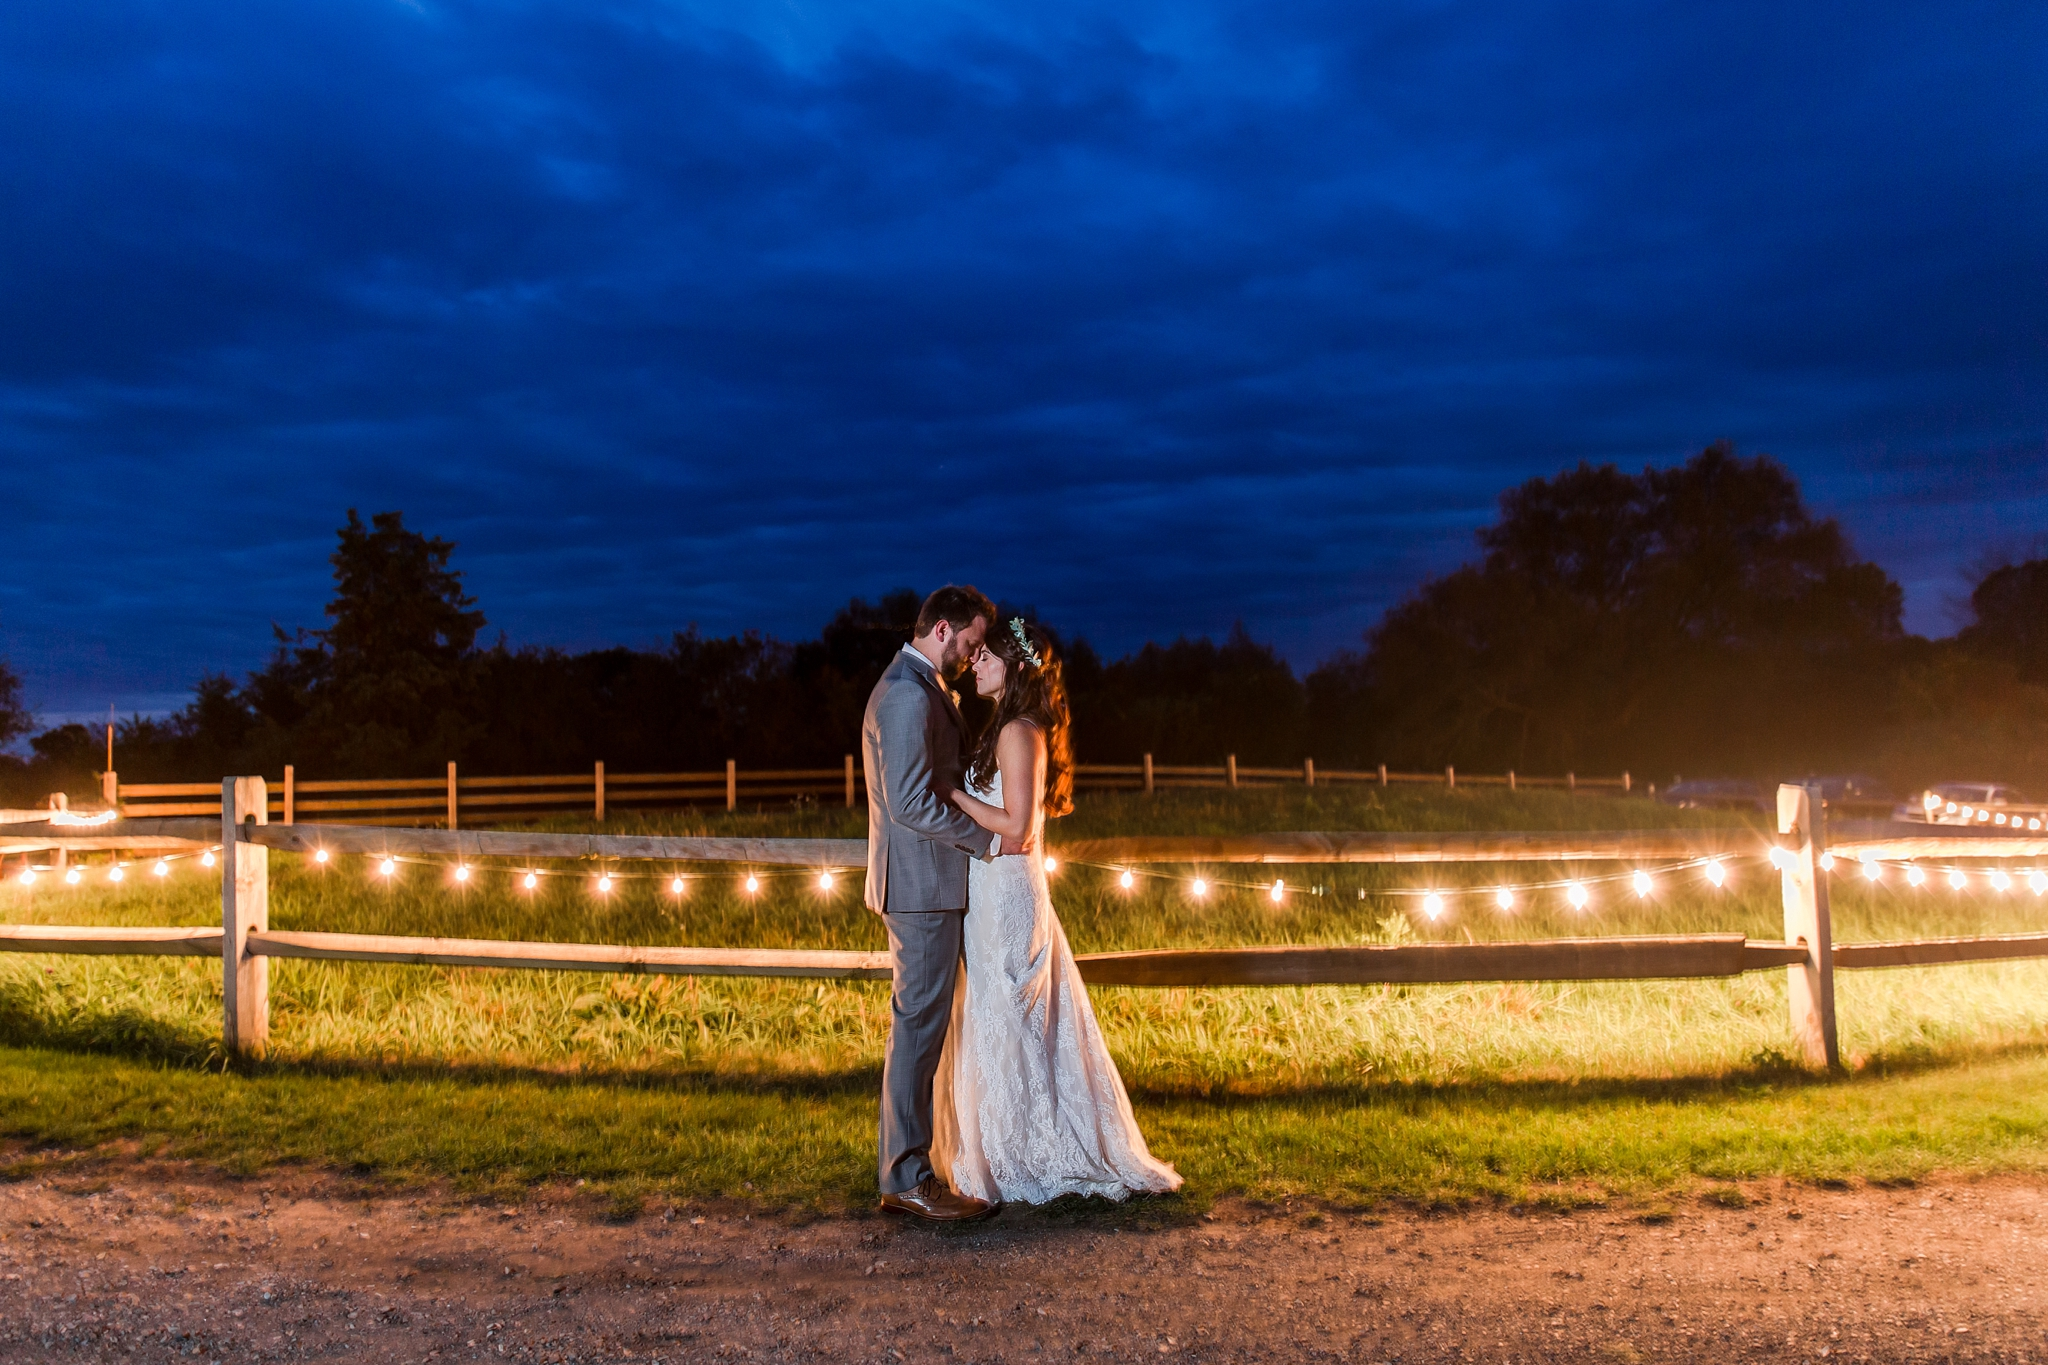 natural-rustic-wedding-photos-at-frutig-farms-the-valley-in-ann-arbor-michigan-by-courtney-carolyn-photography_0104.jpg